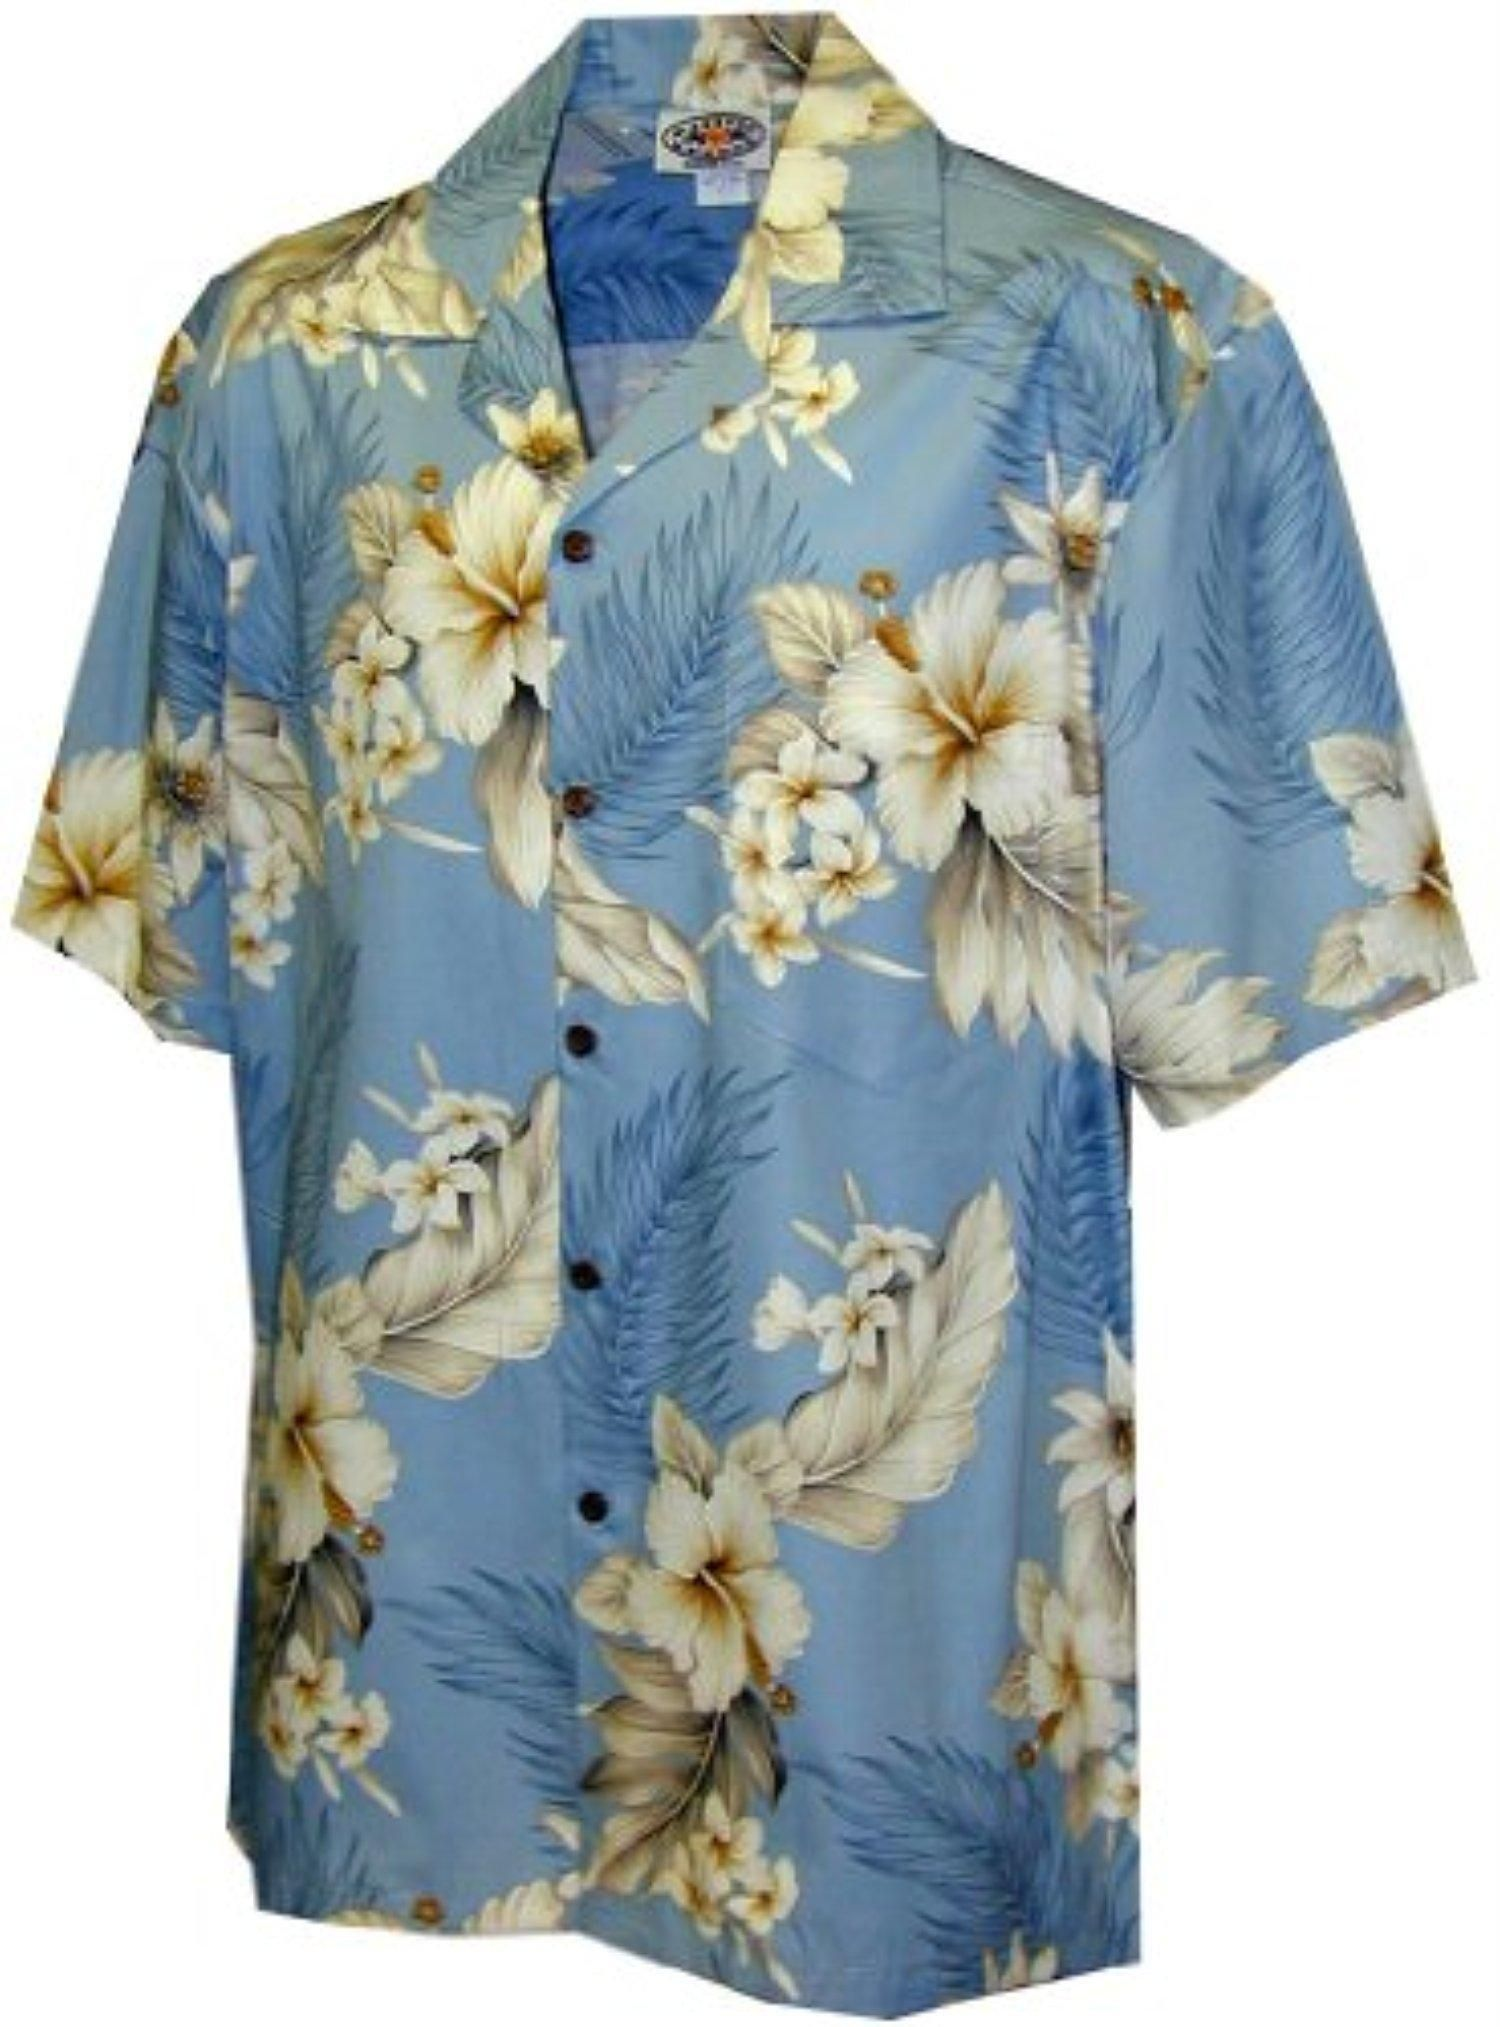 c004066a Pacific Legend Tropical Floral Hibiscus and Plumeria Hawaiian Shirt (2XL,  Blue) - Brought to you by Avarsha.com